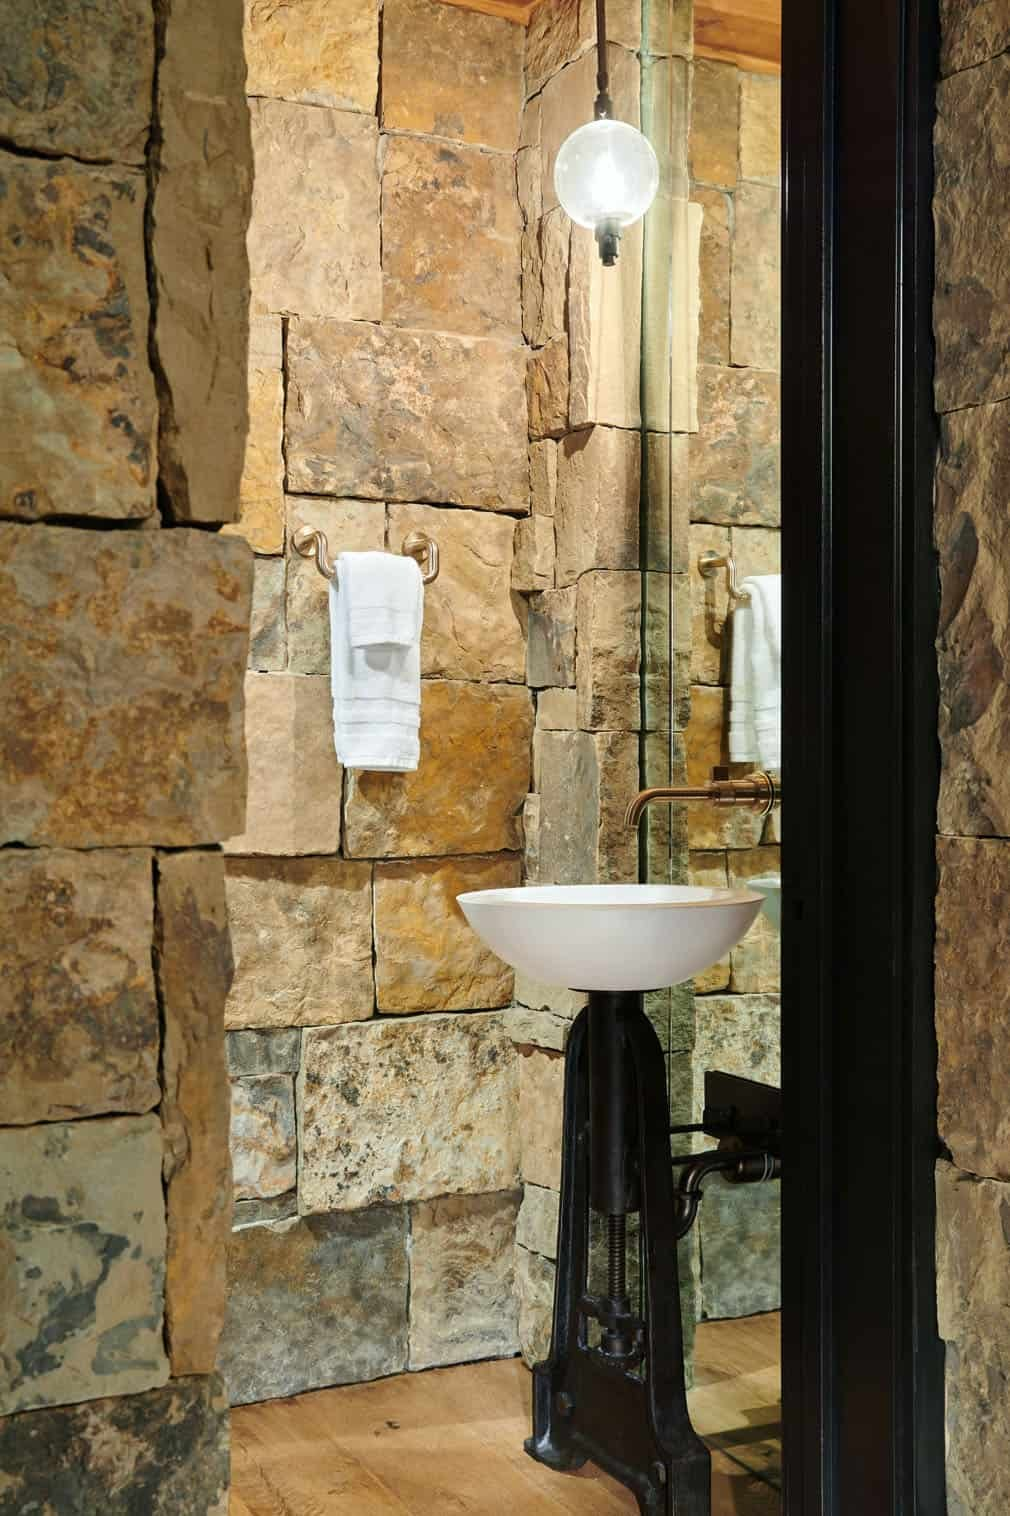 Stone was also used in other areas of the house like the bathrooms to create a unique and nature-inspired design